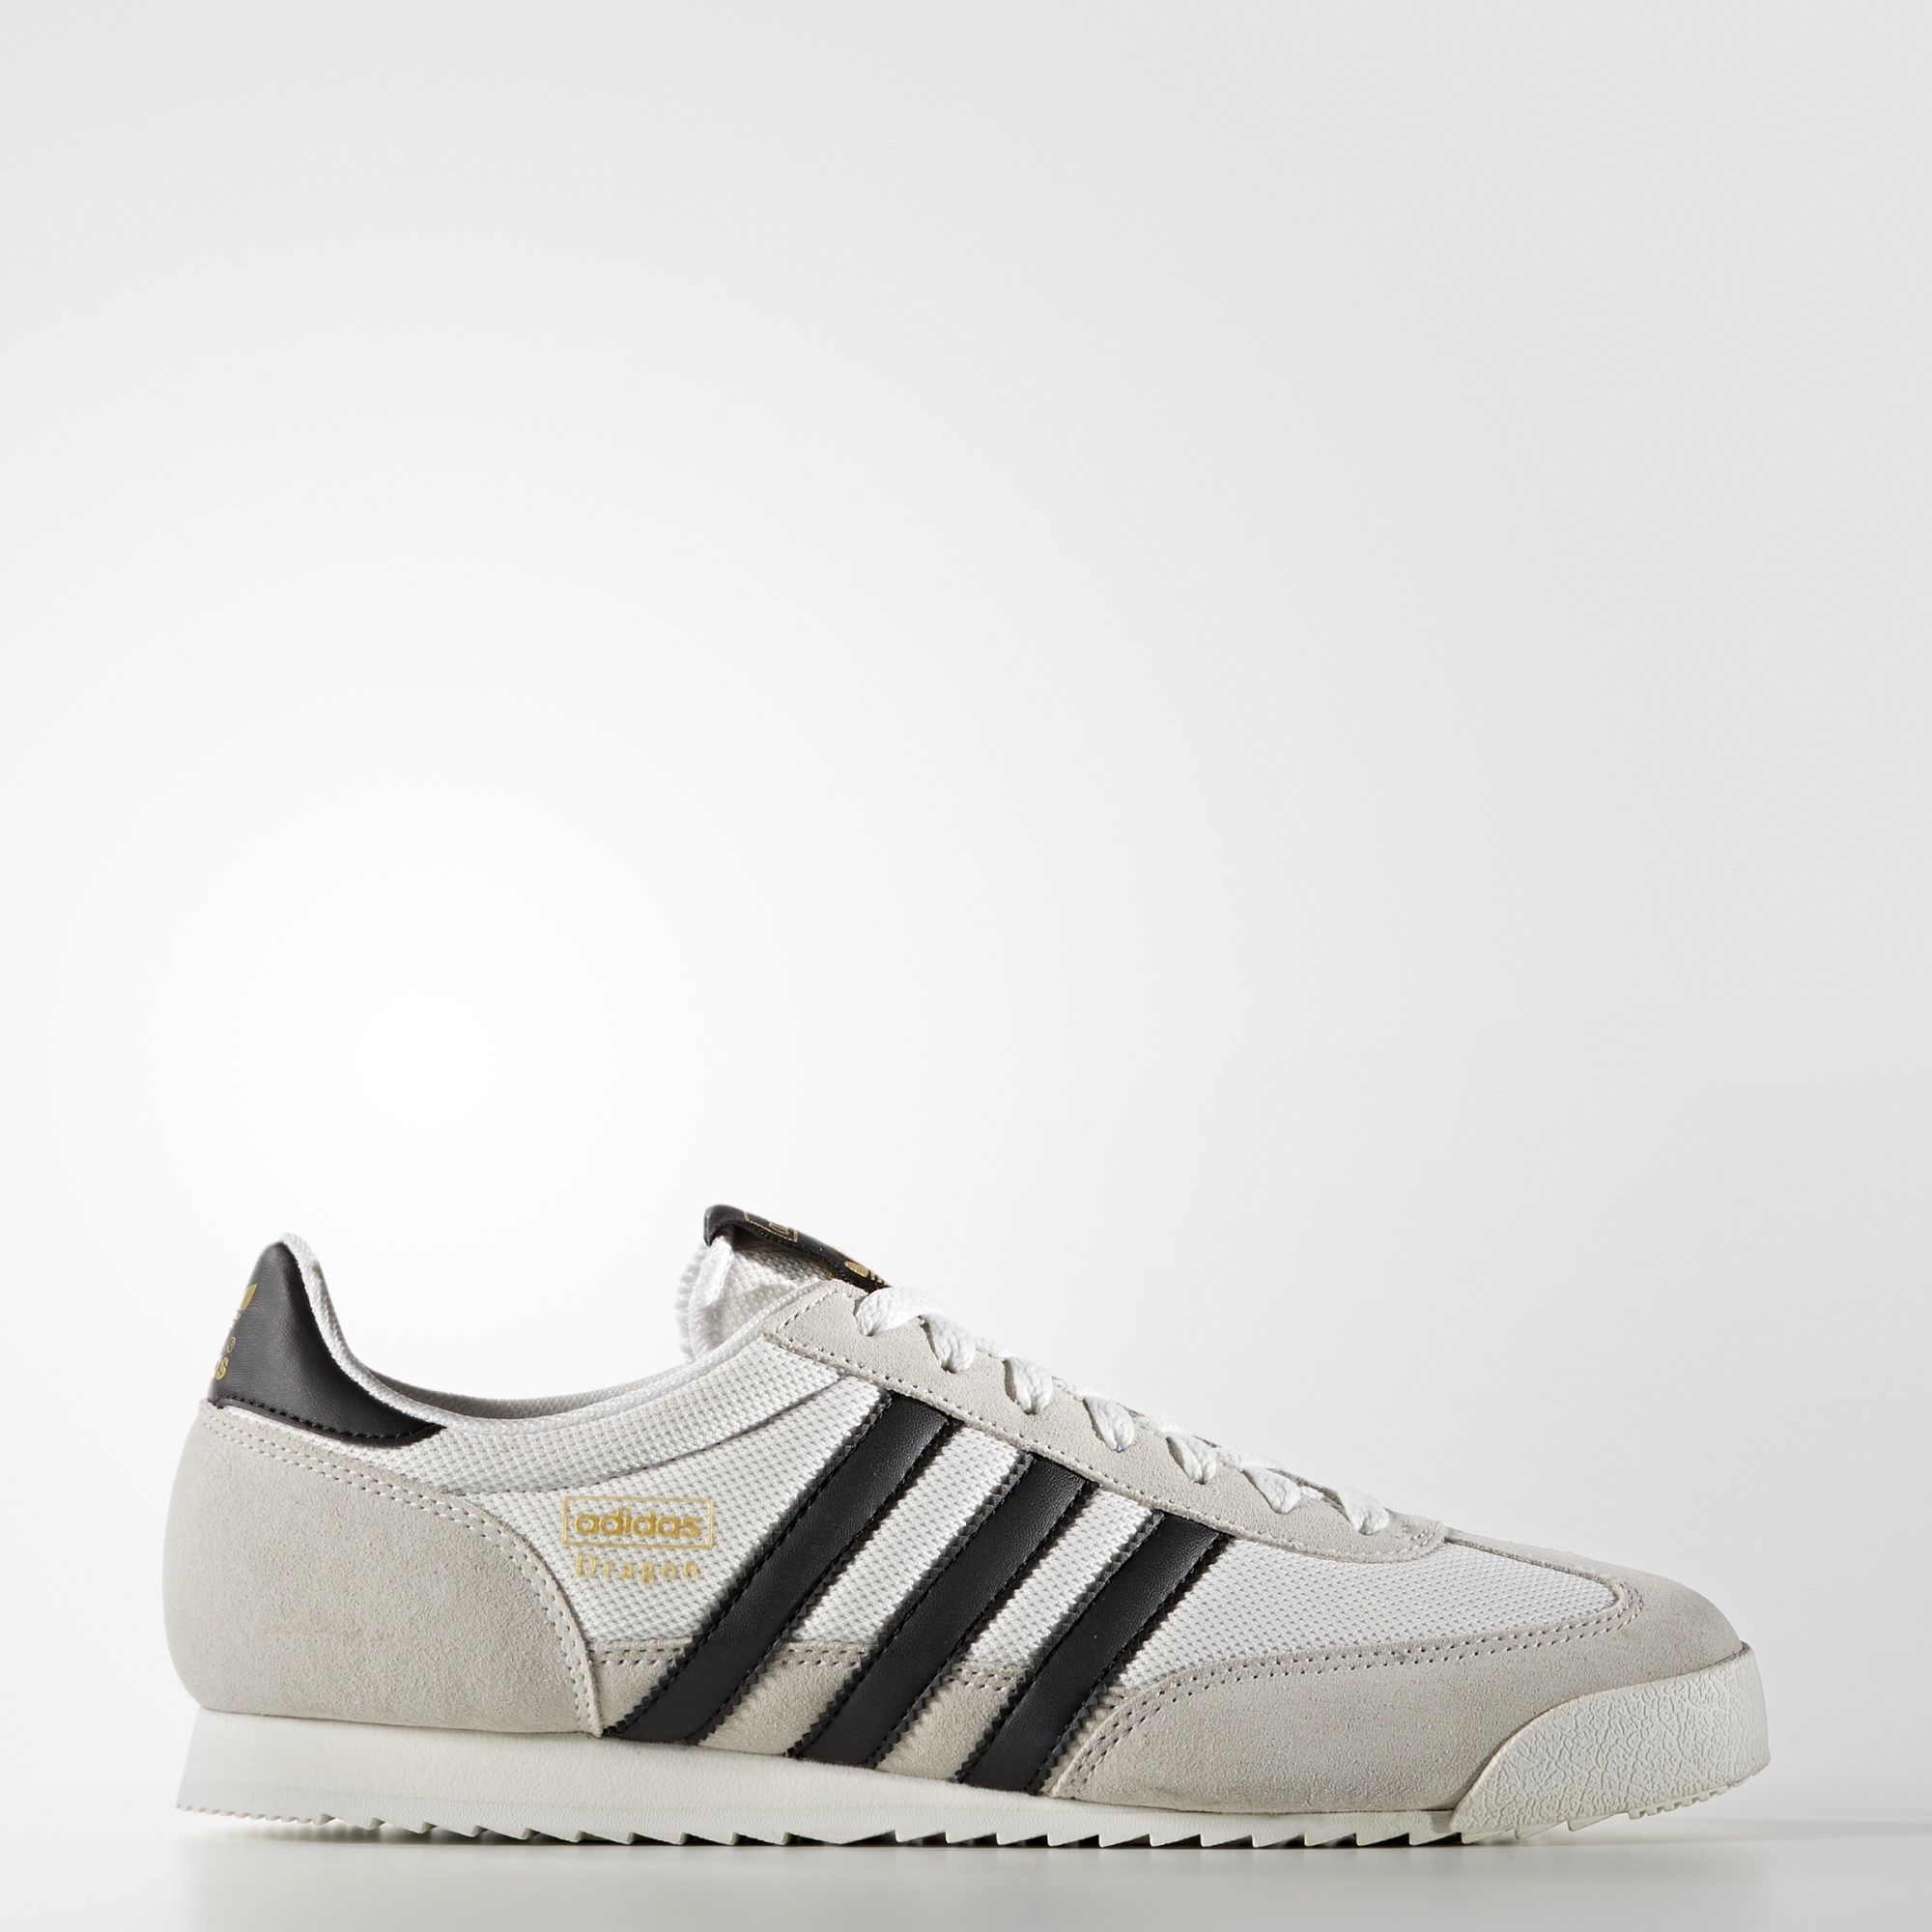 mens dragon adidas trainers